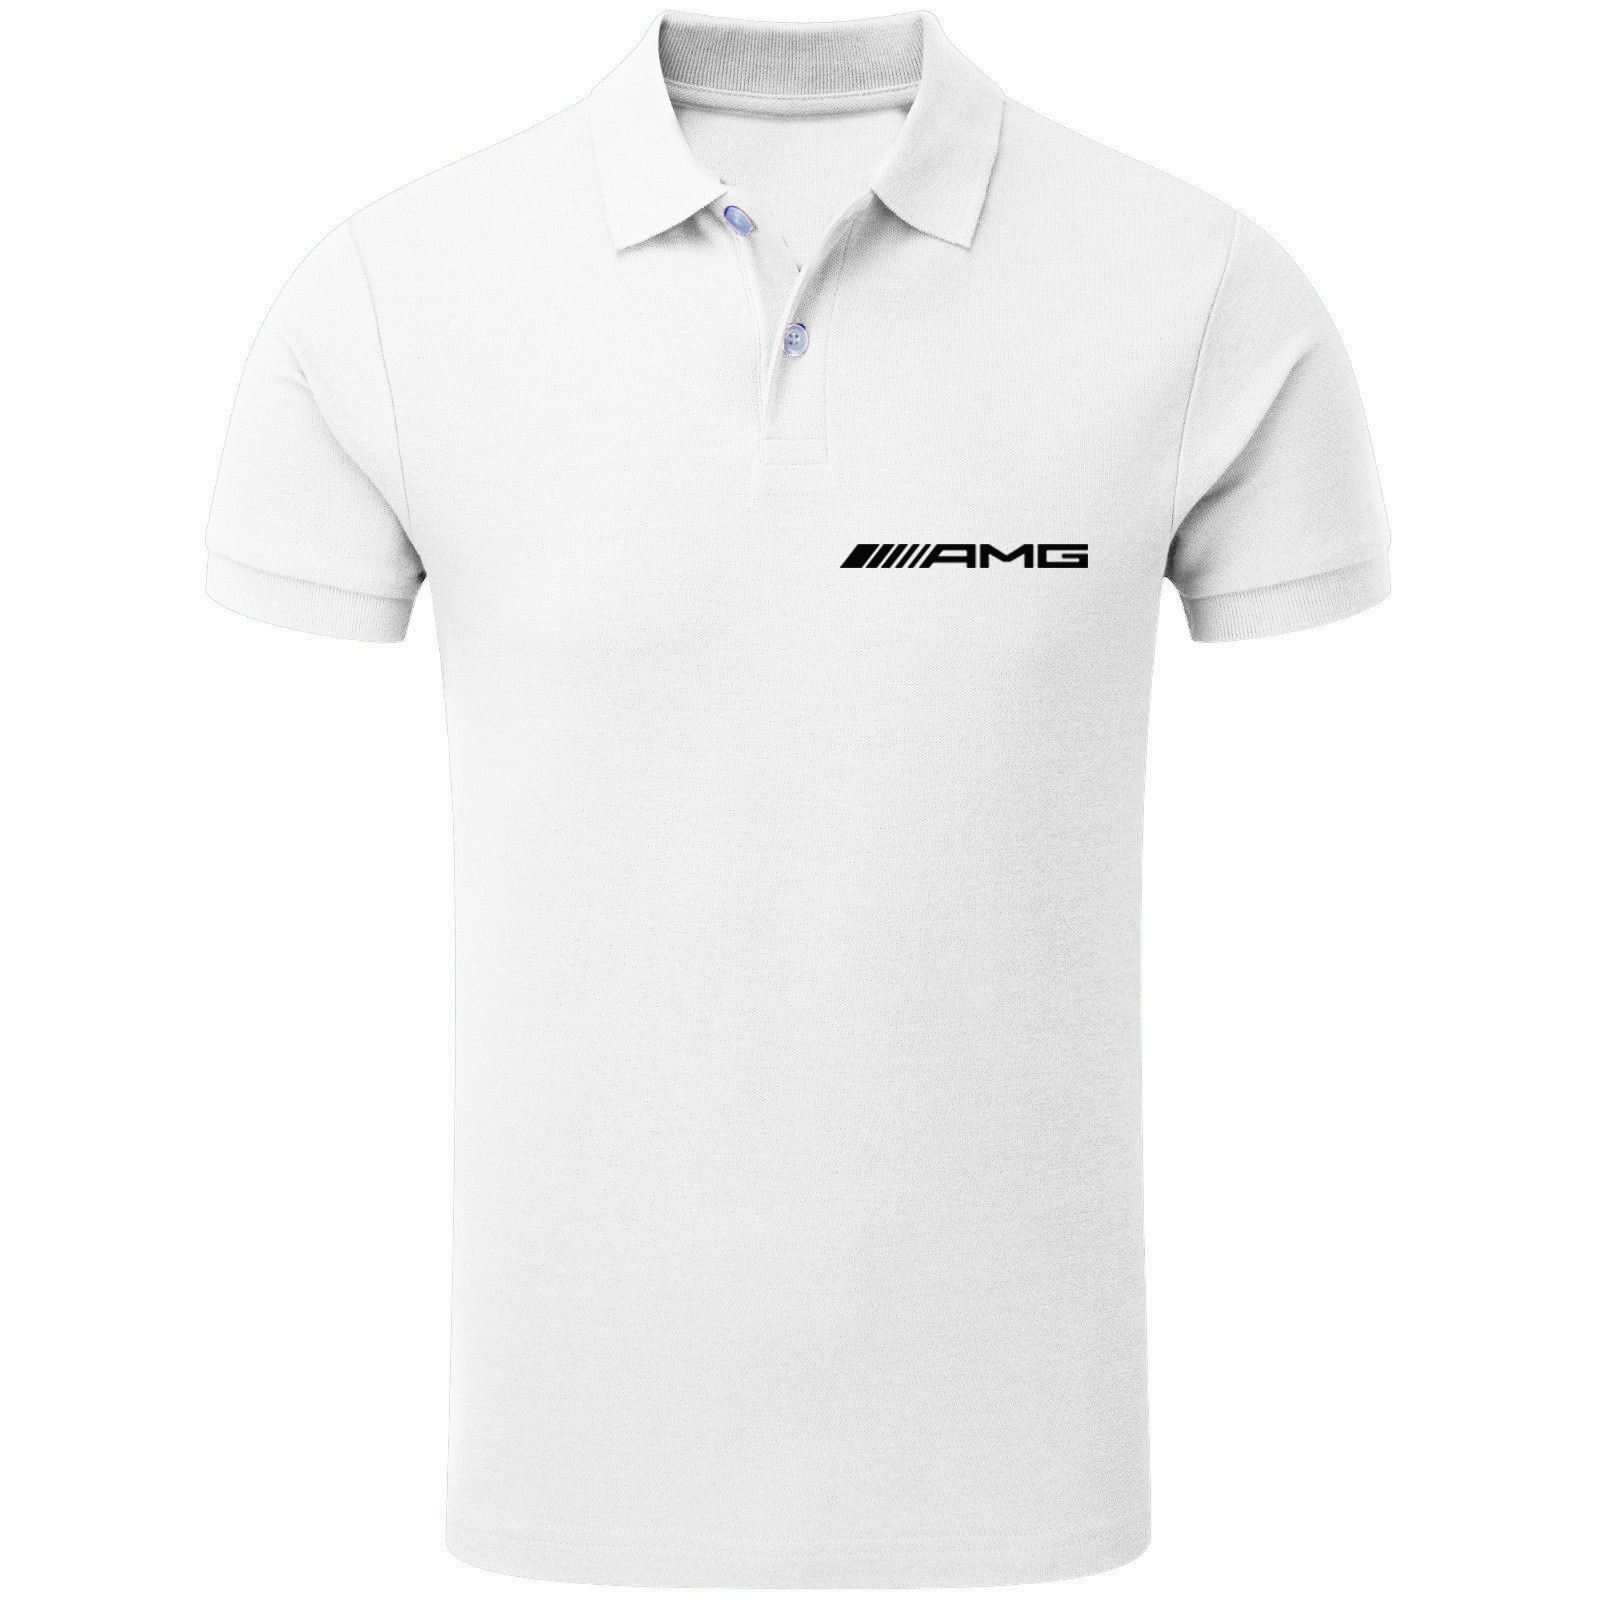 mens mercedes benz amg polo neck race day competition t shirt top s xxl ebay. Black Bedroom Furniture Sets. Home Design Ideas